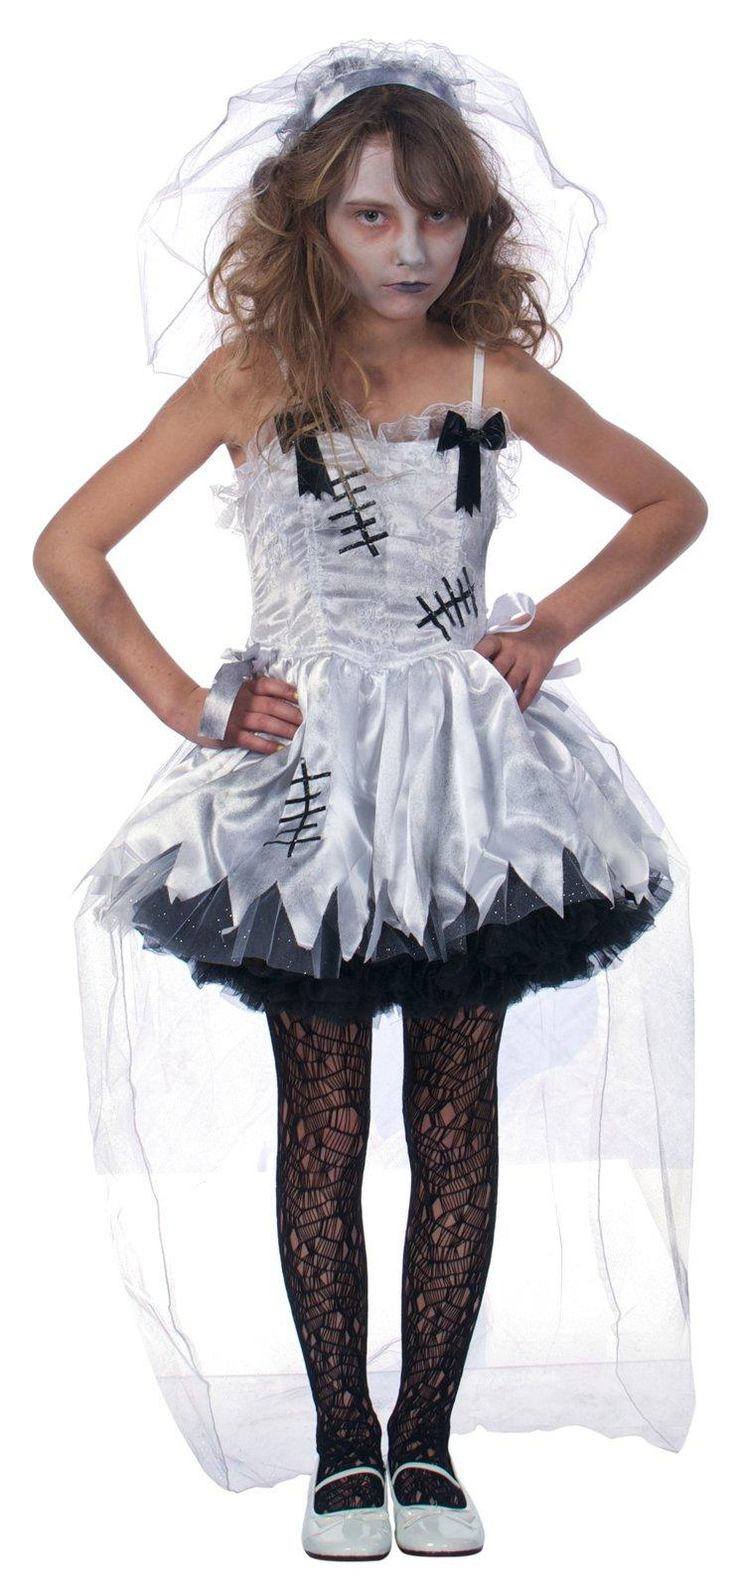 Flower Girl Zombie Costume from Buycostumes.com